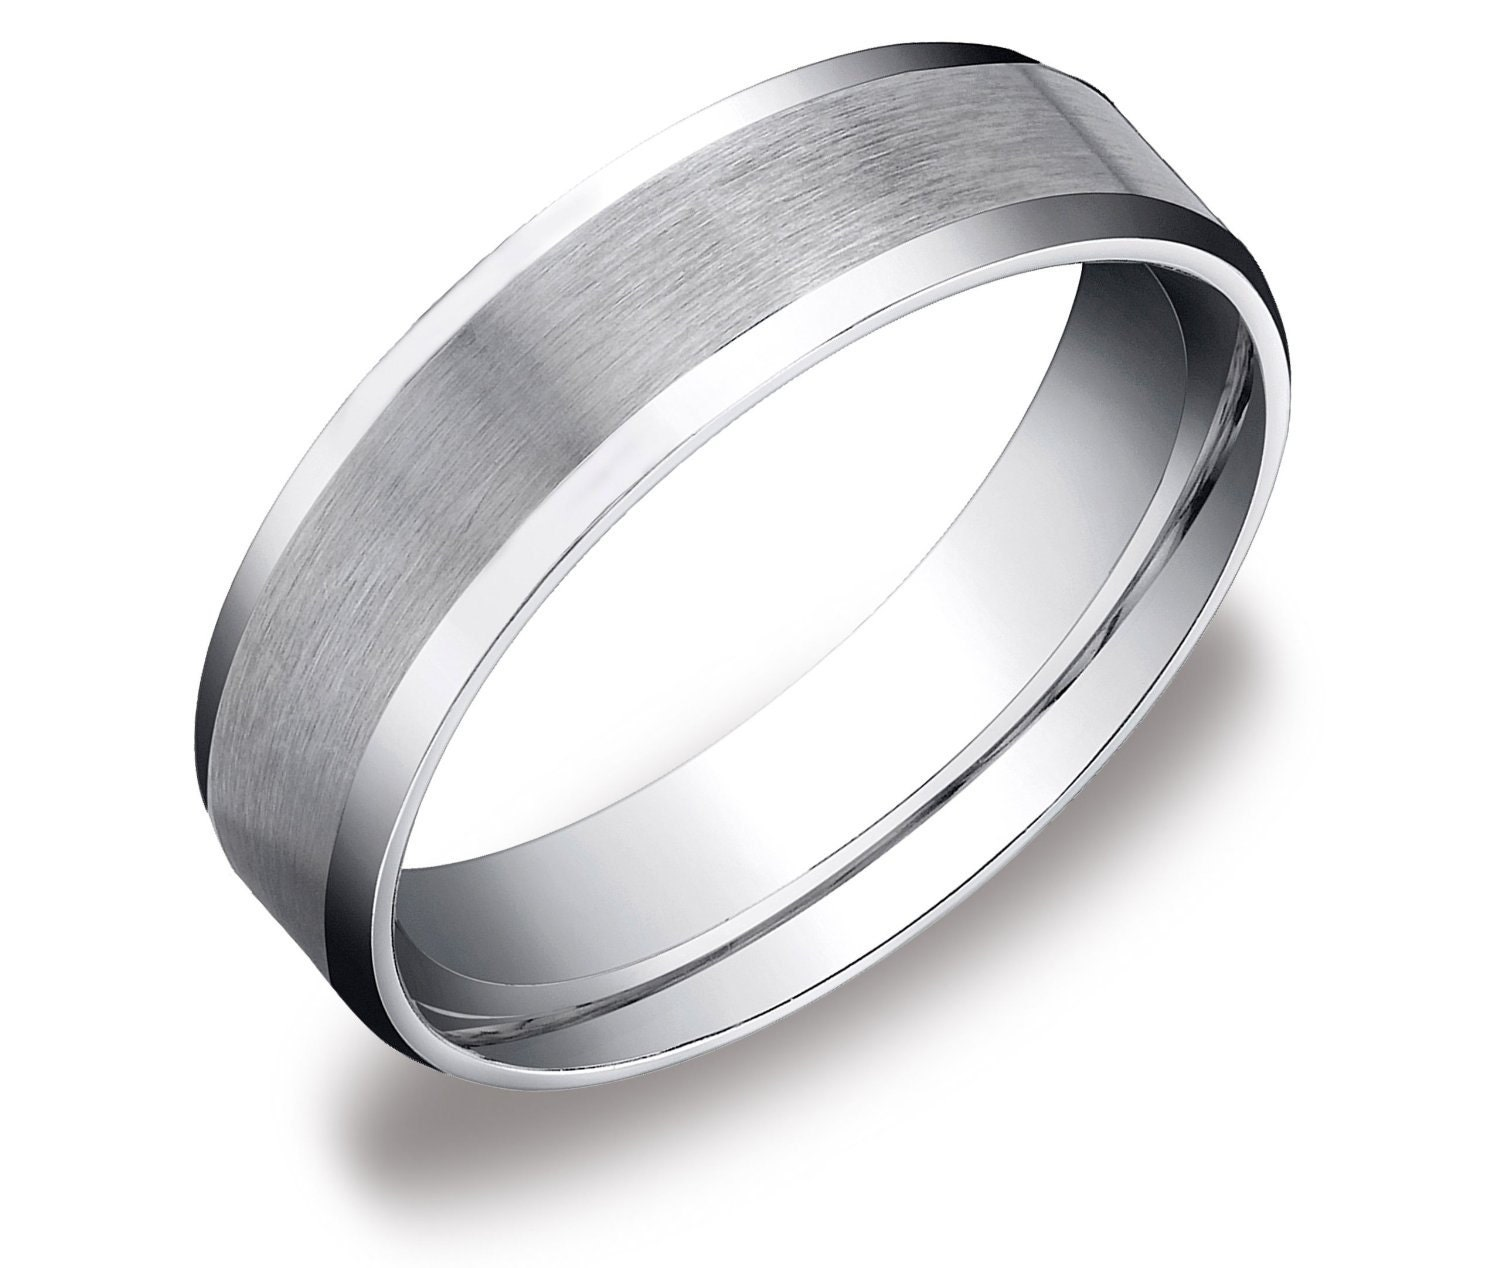 brushed+gold+wedding+band+mens brushed gold wedding band Brushed Gold Wedding Band Mens Mens Platinum Brushed Wedding Mens Platinum Brushed Wedding Source Abuse Report